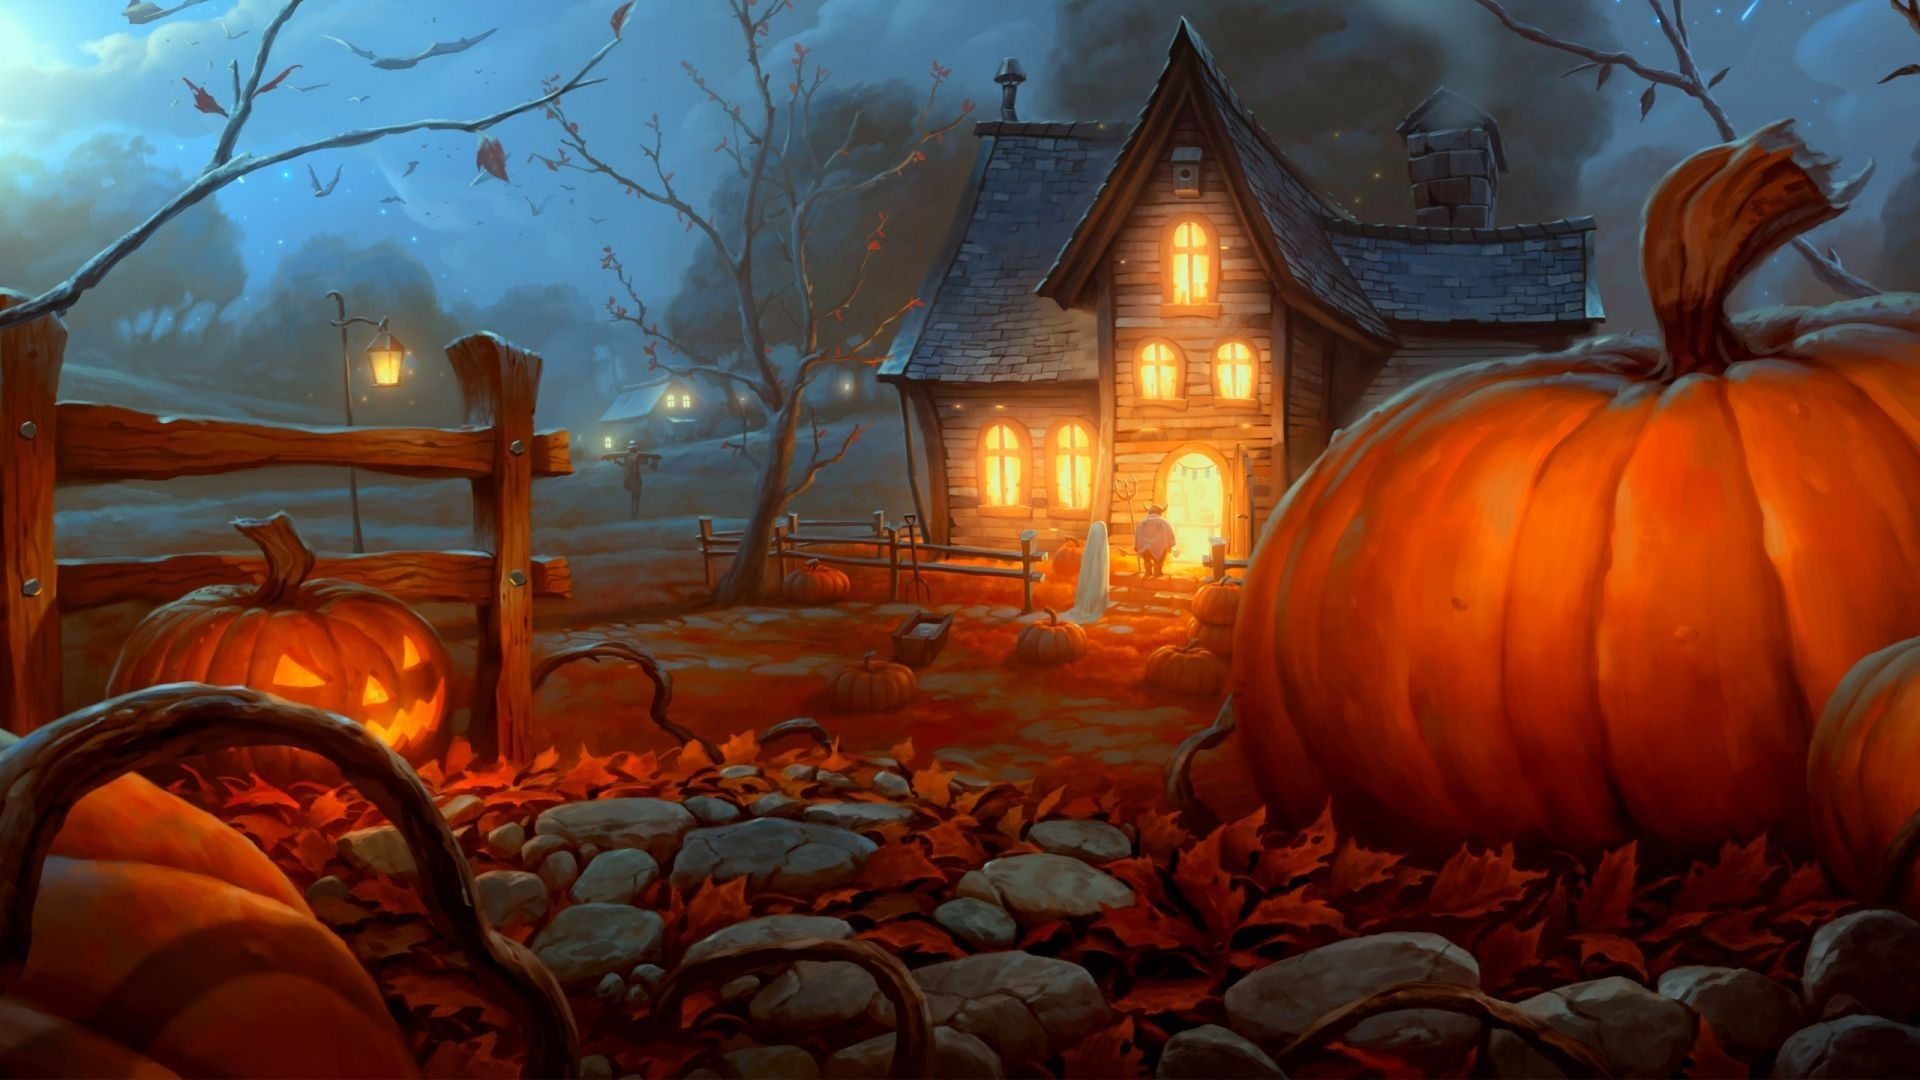 1920x1080 anatomy-of-halloween-wallpaper-for--hdtv-1080p-